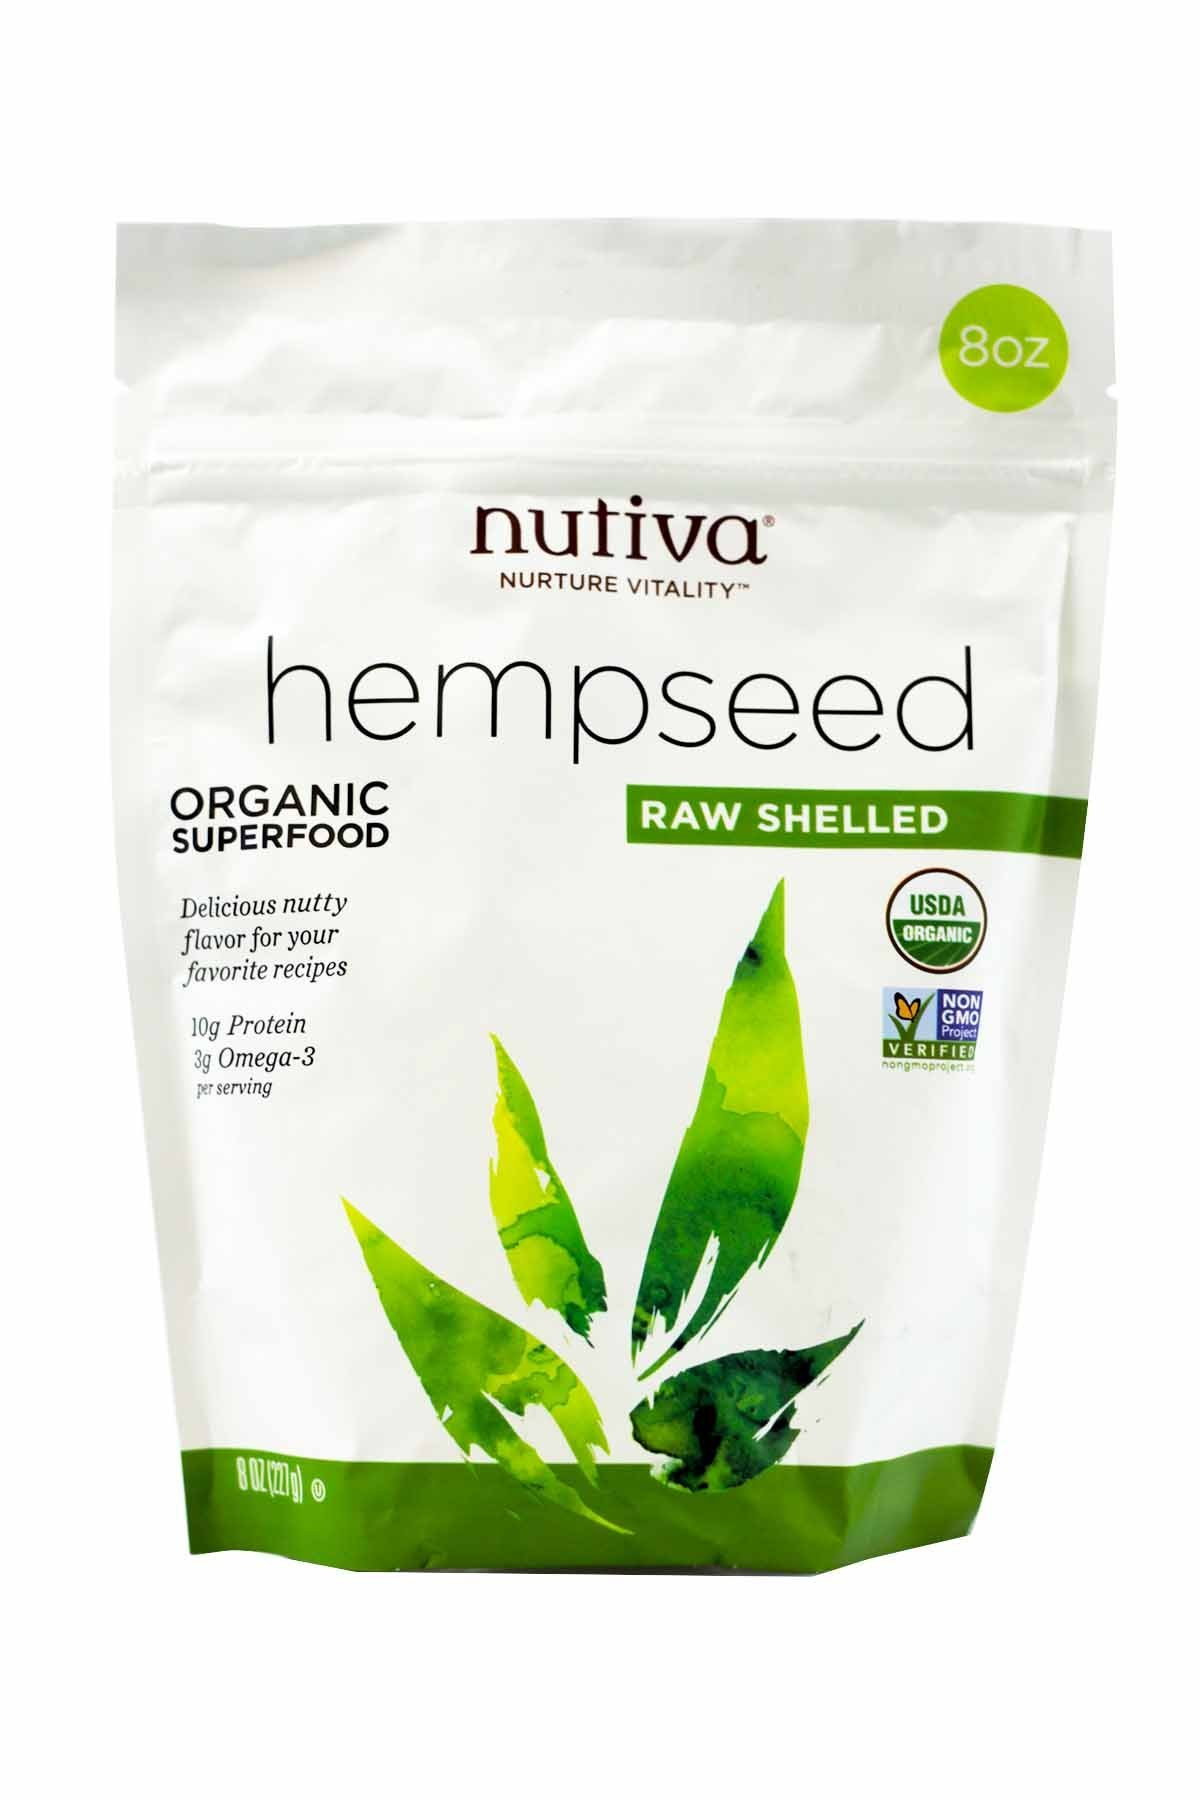 Nutiva Organic, Raw, Shelled Hempseed from non-GMO, Sustainably Farmed Canadian Hemp, 8-ounce